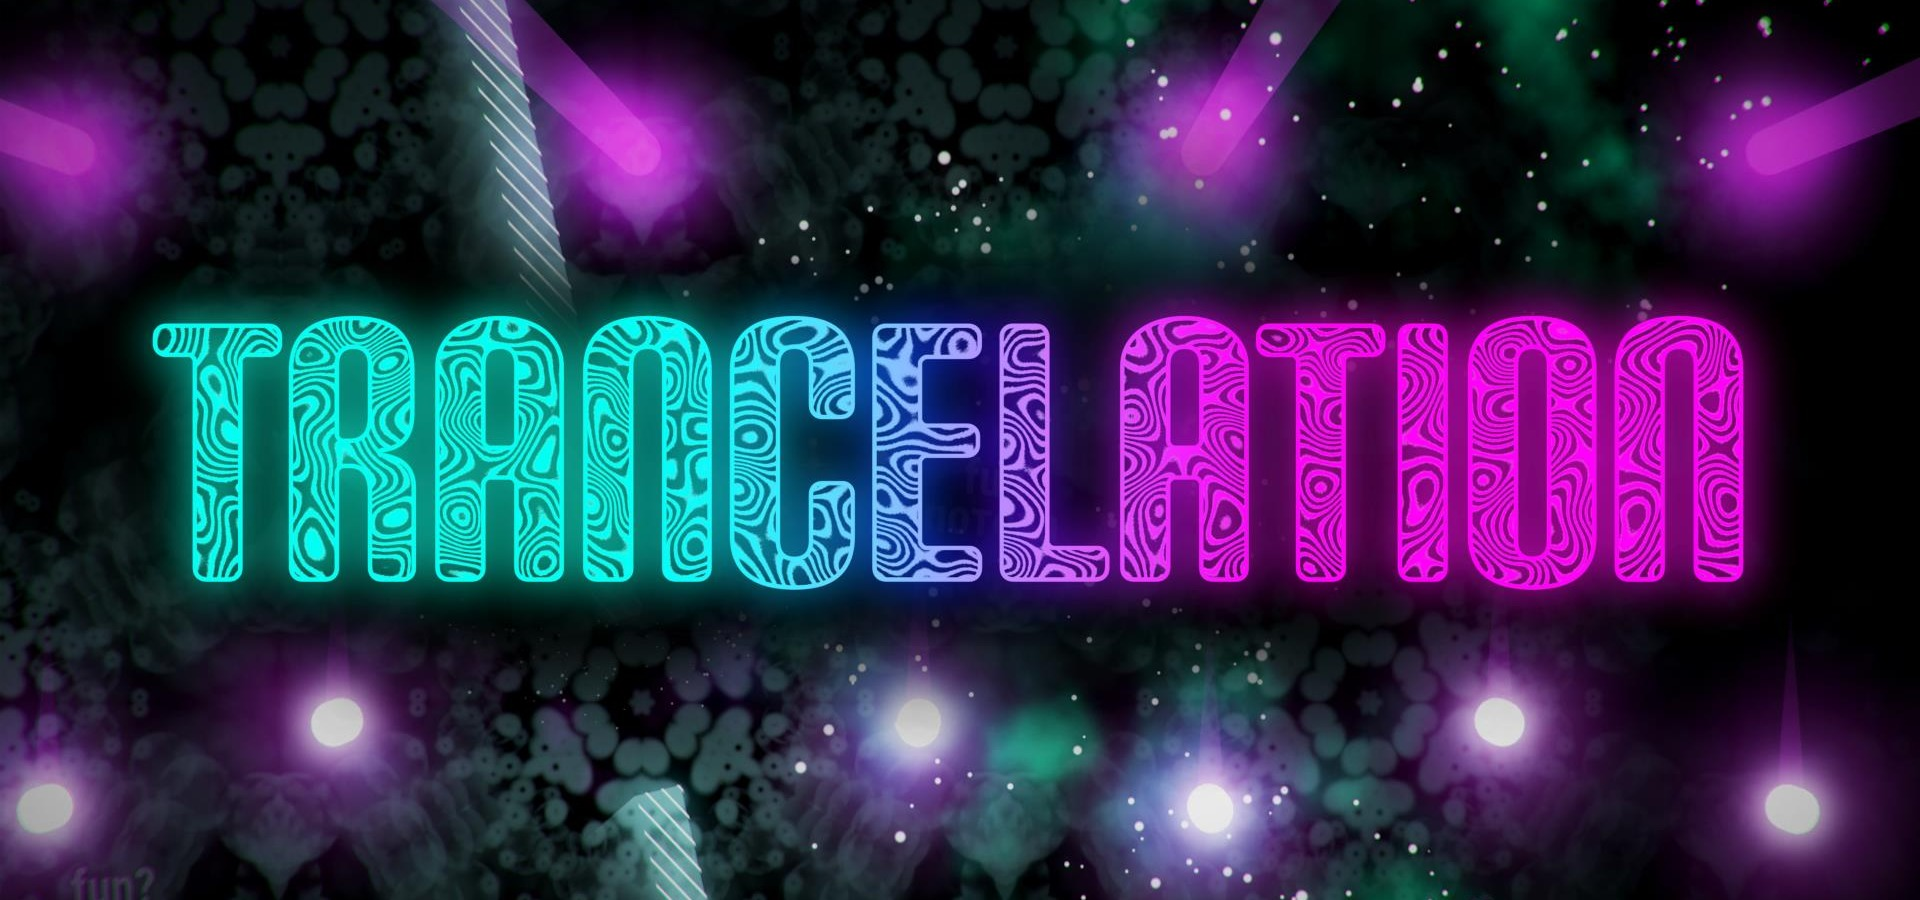 Trancelation is leaving Early Access next week